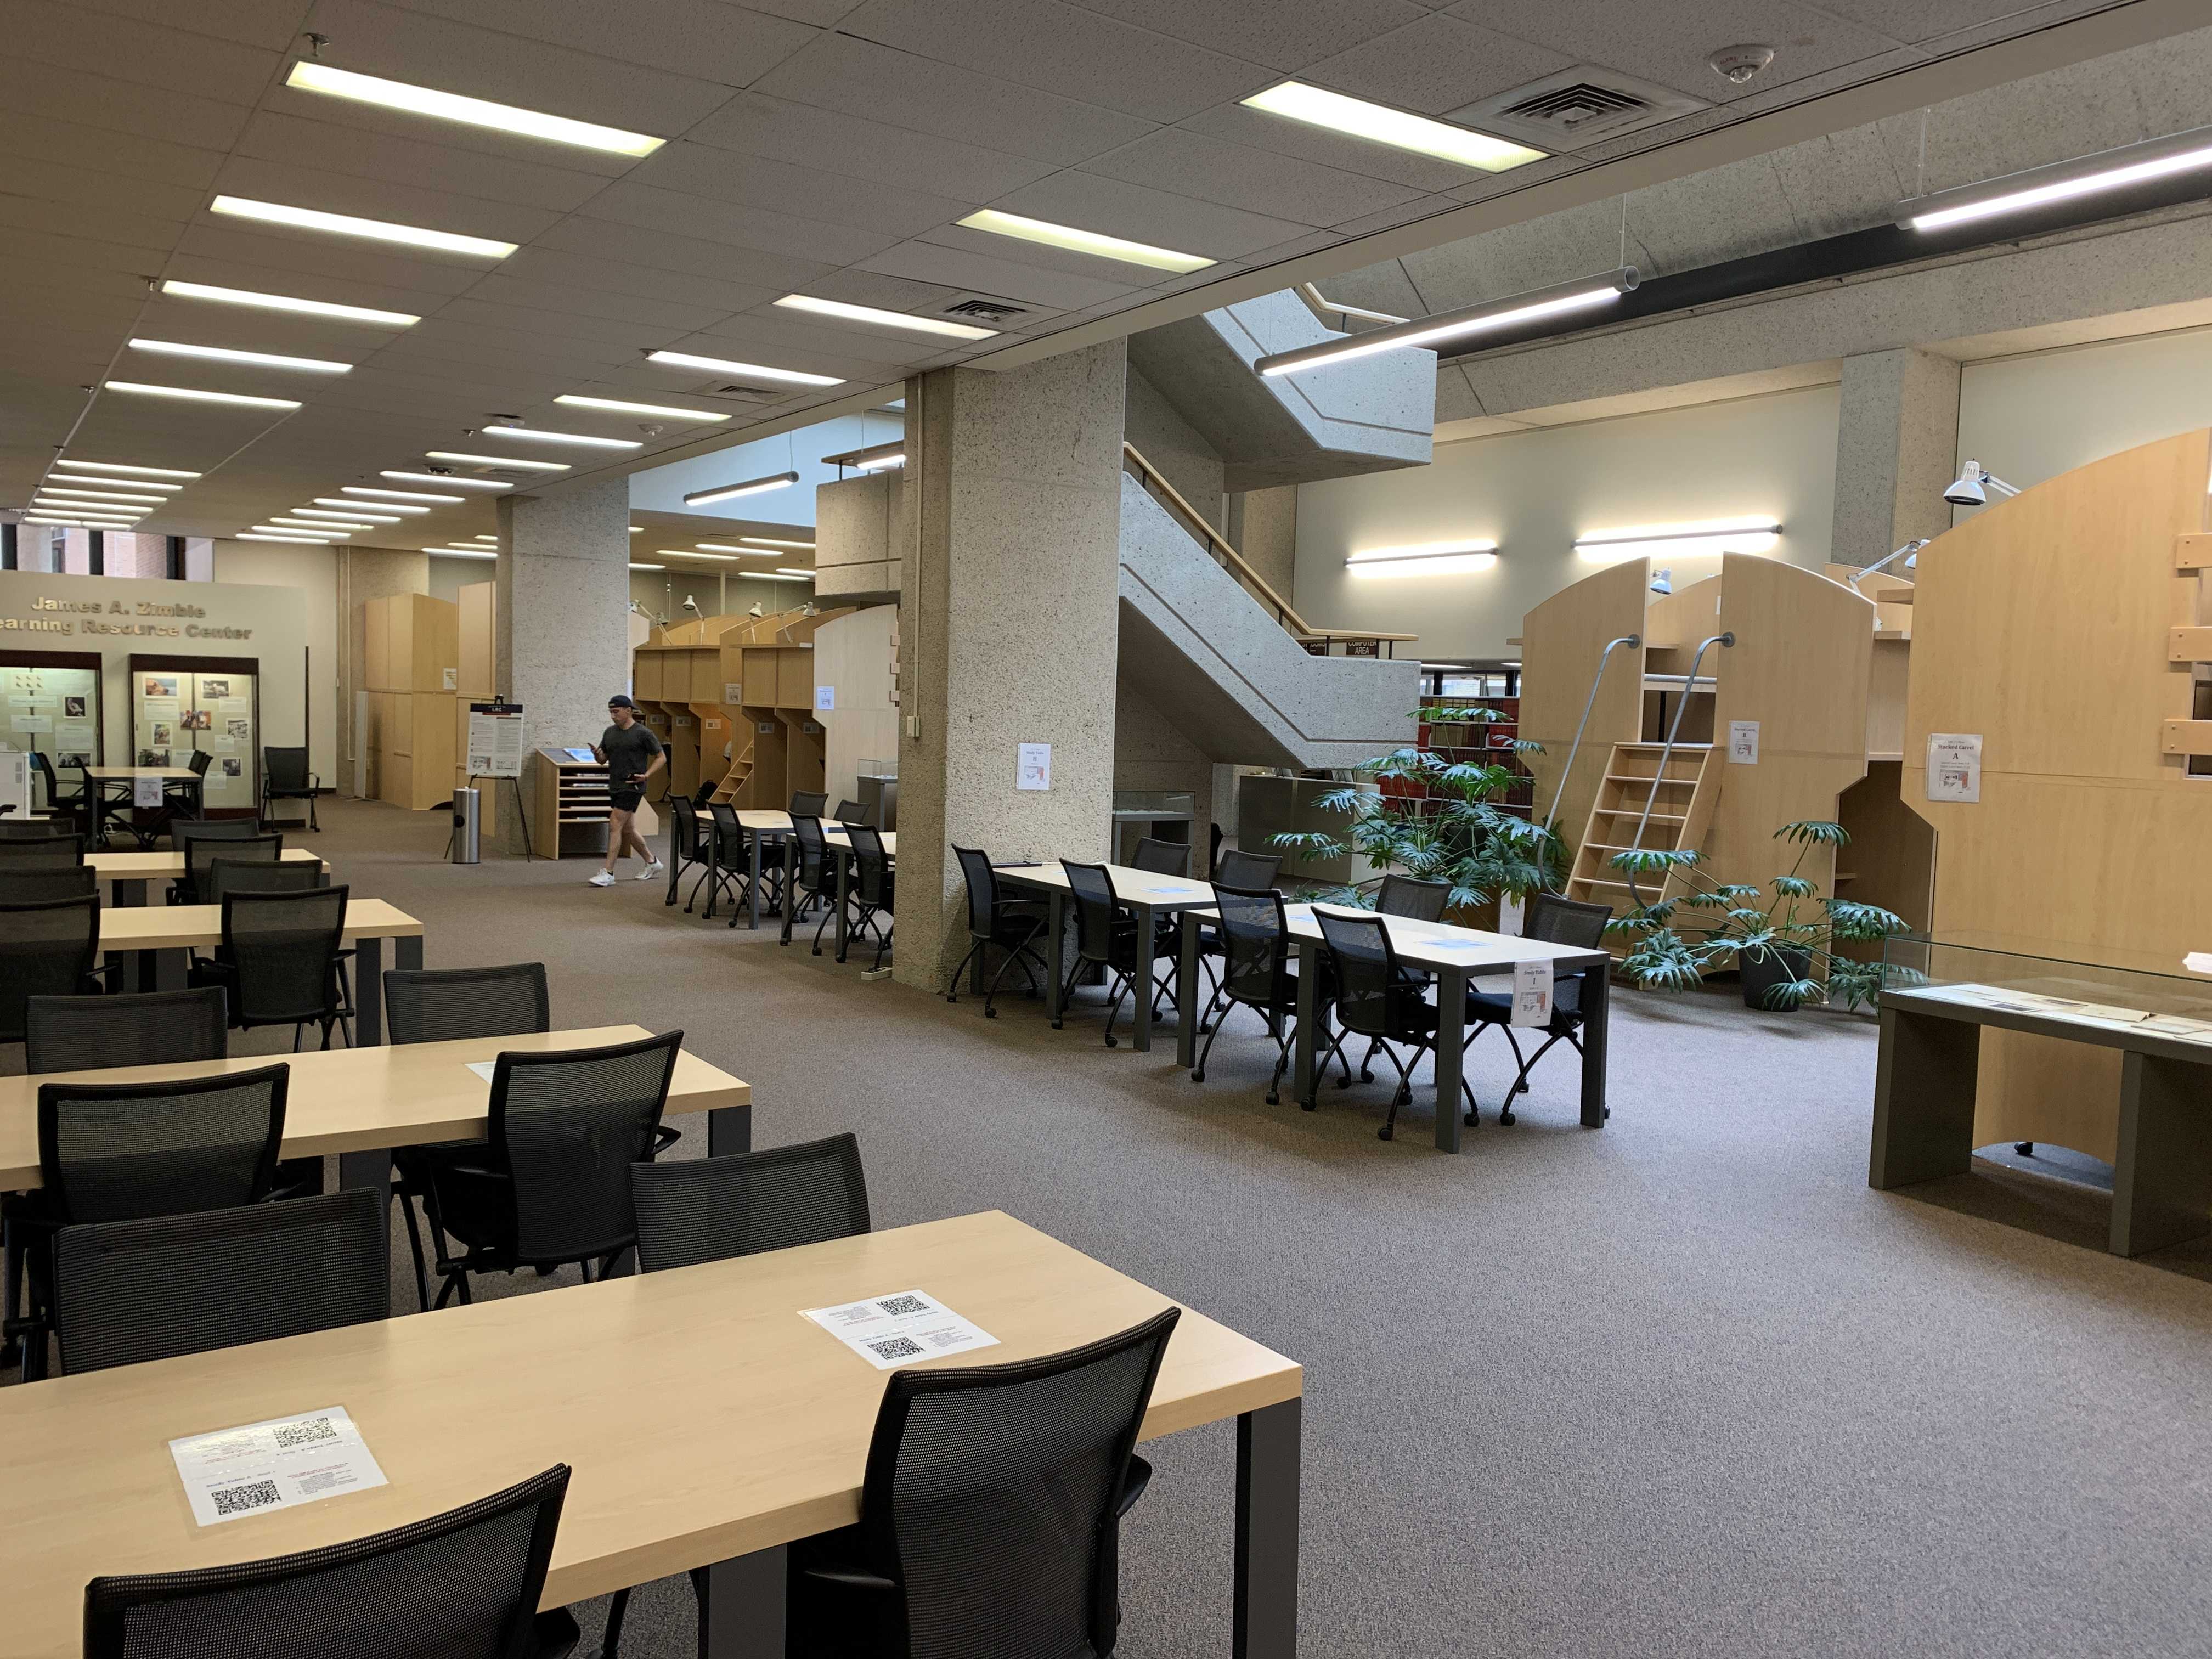 A view of the first floor of the LRC, showing study tables and carrels.